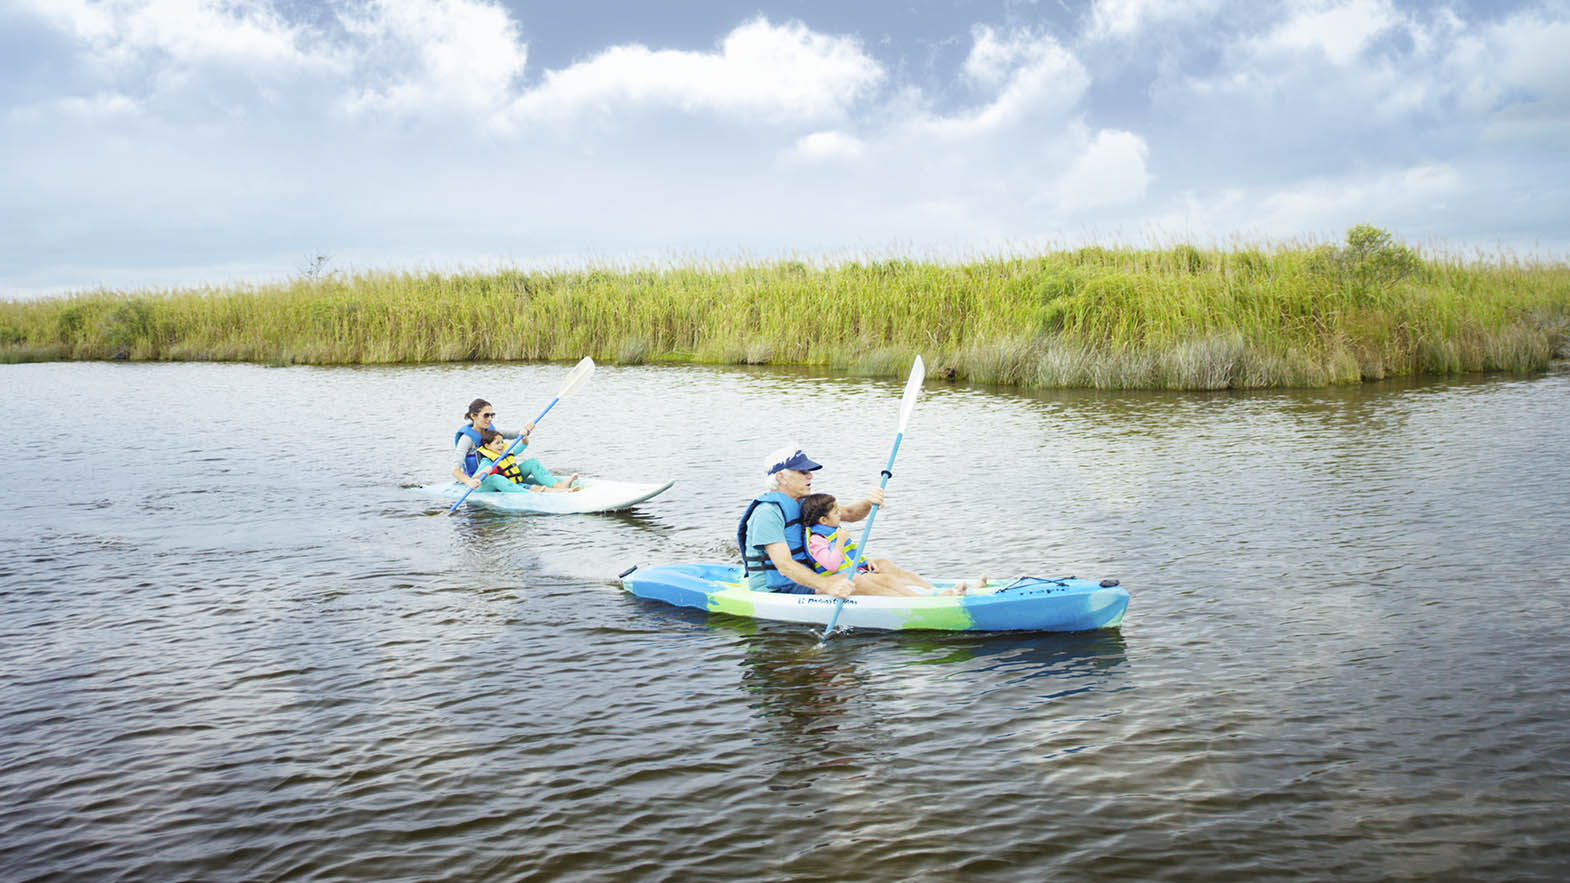 sandbridge-beach_kayaking_virginia-beach-cvb.jpg